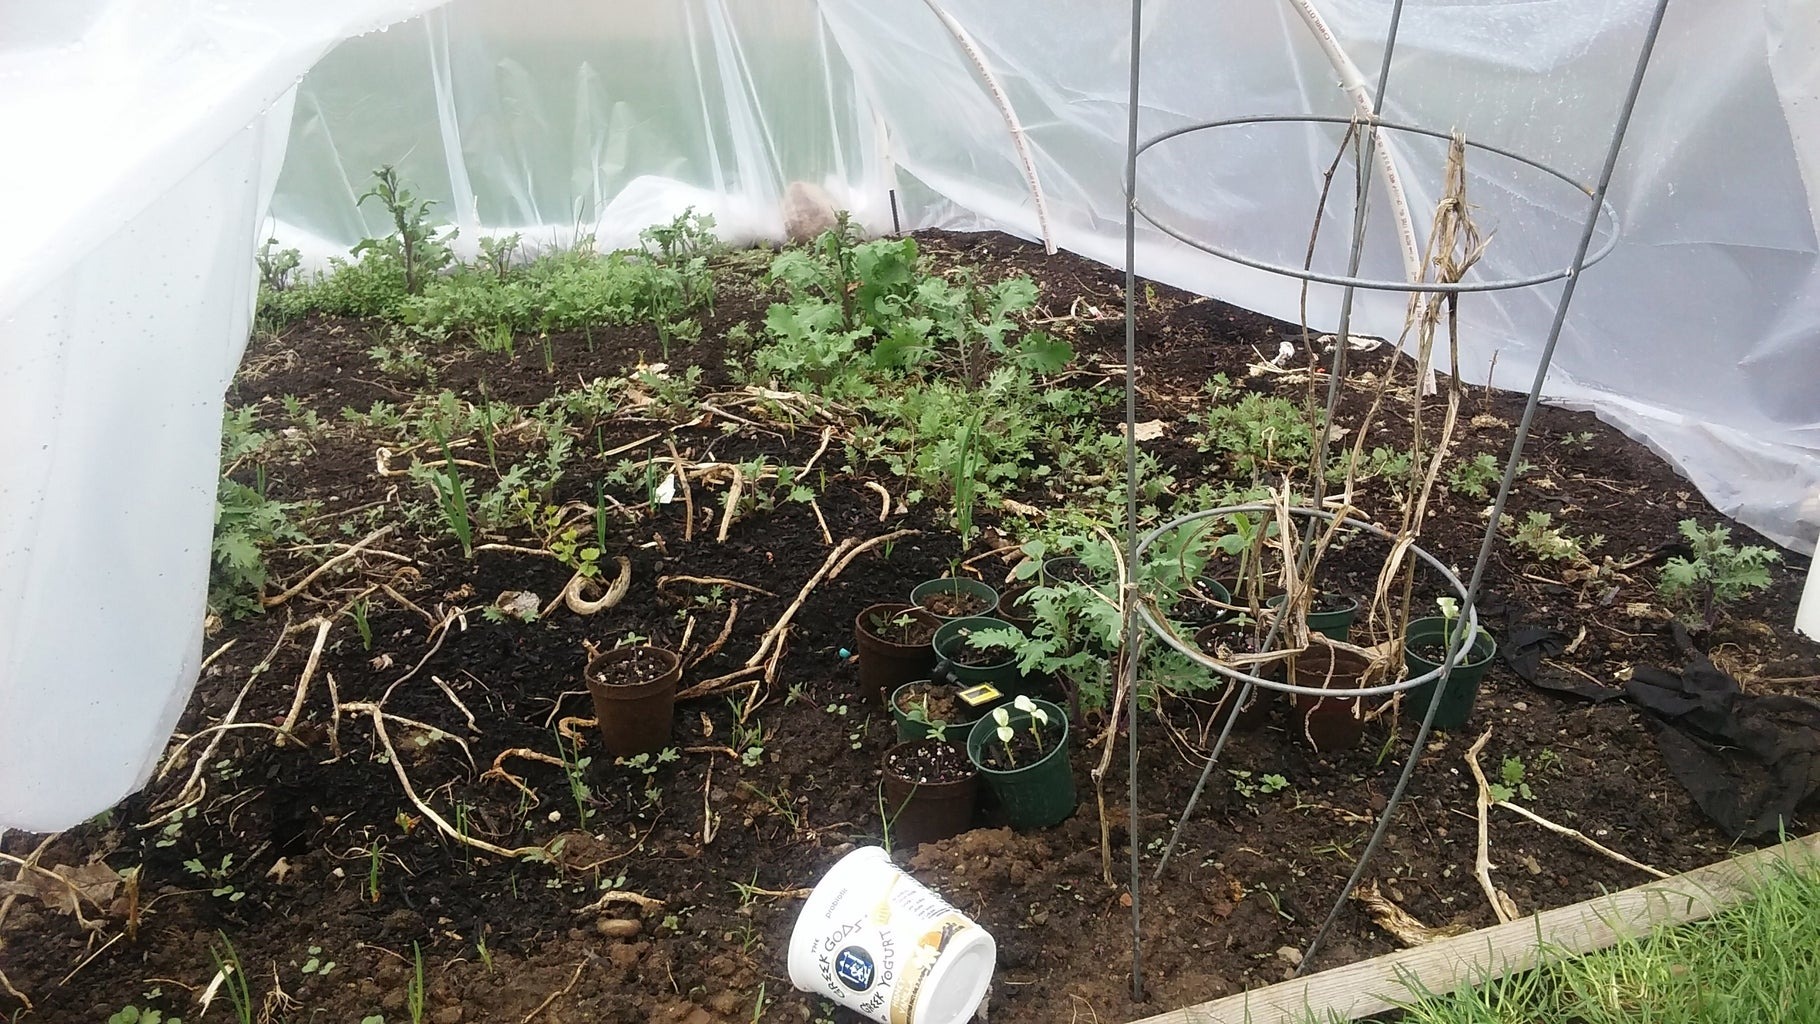 April 24th, Inside the Hoop House